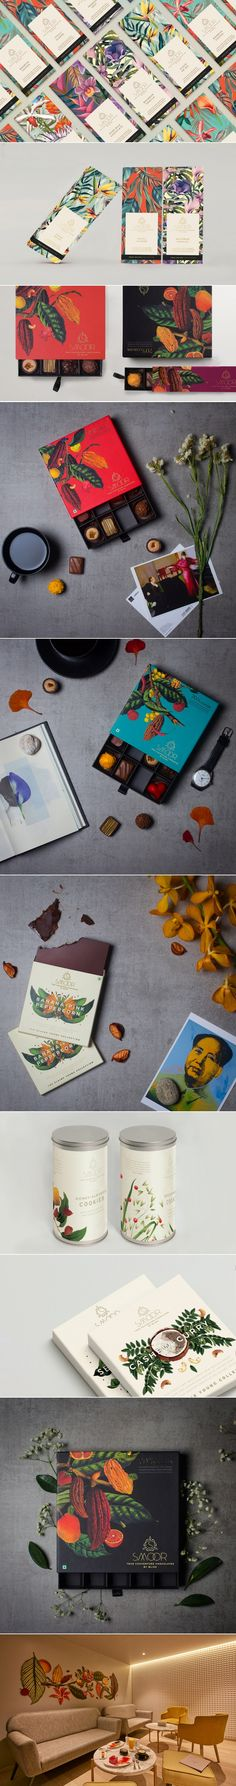 These Chocolates Come With Gorgeous Botanical Illustrations — The Dieline | Packaging & Branding Design & Innovation News